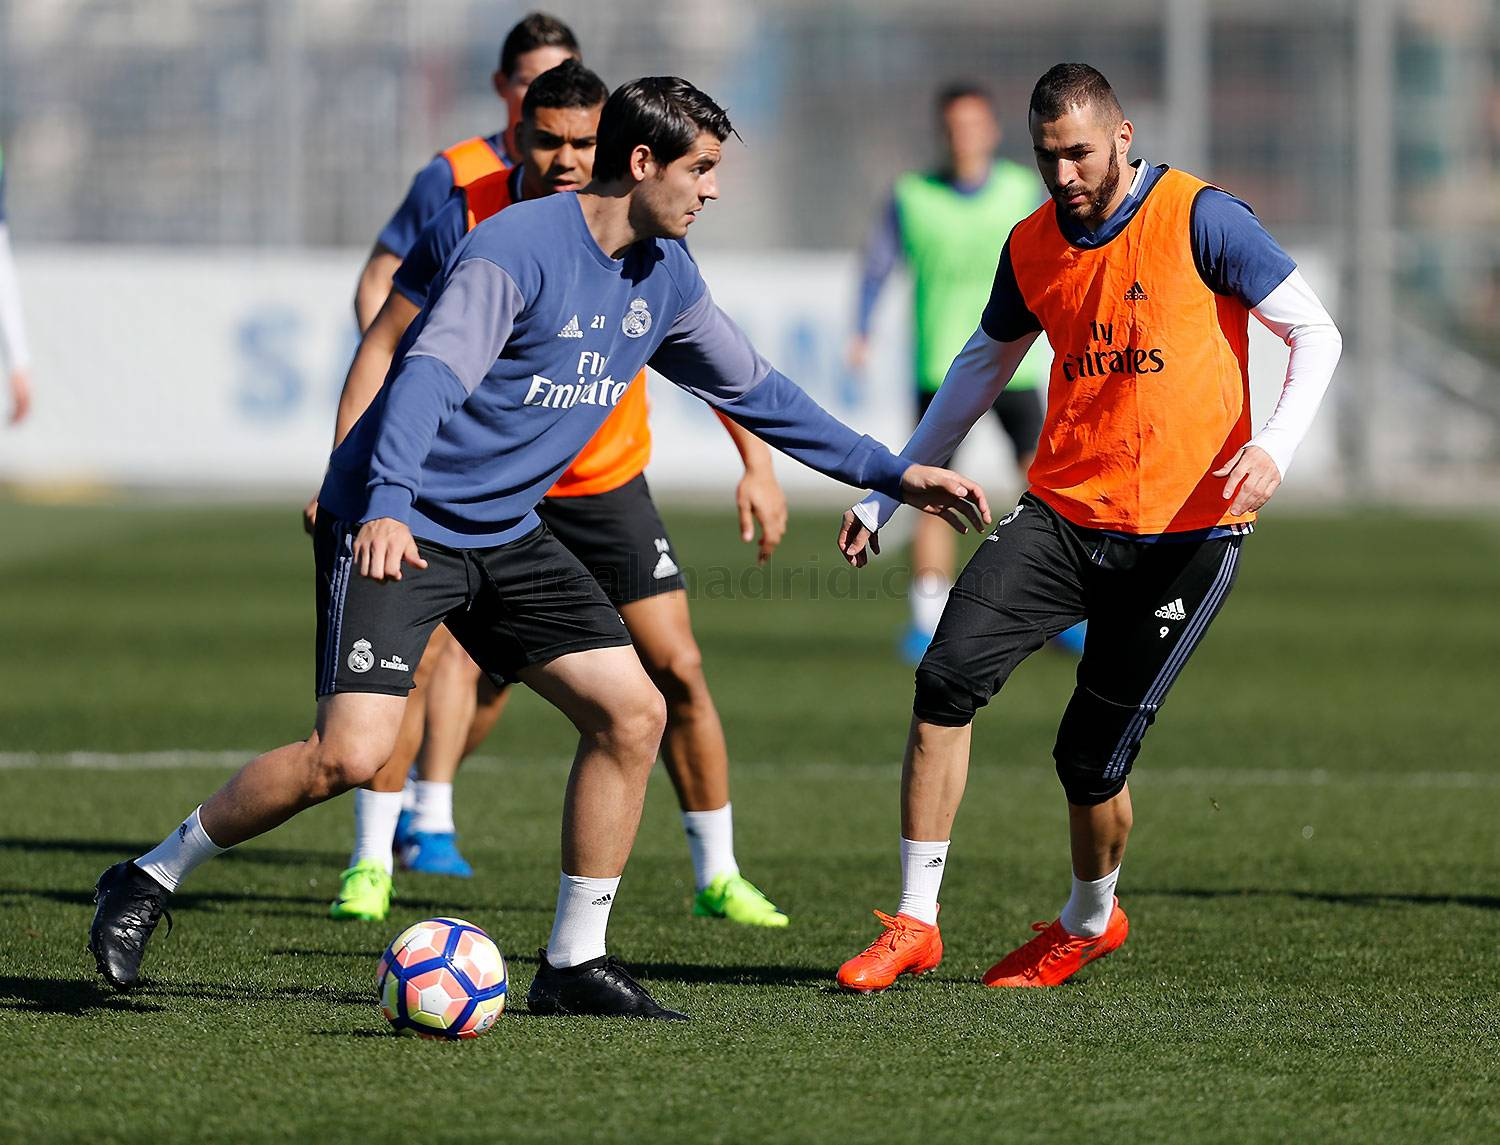 Real Madrid - Entrenamiento del Real Madrid - 10-03-2017